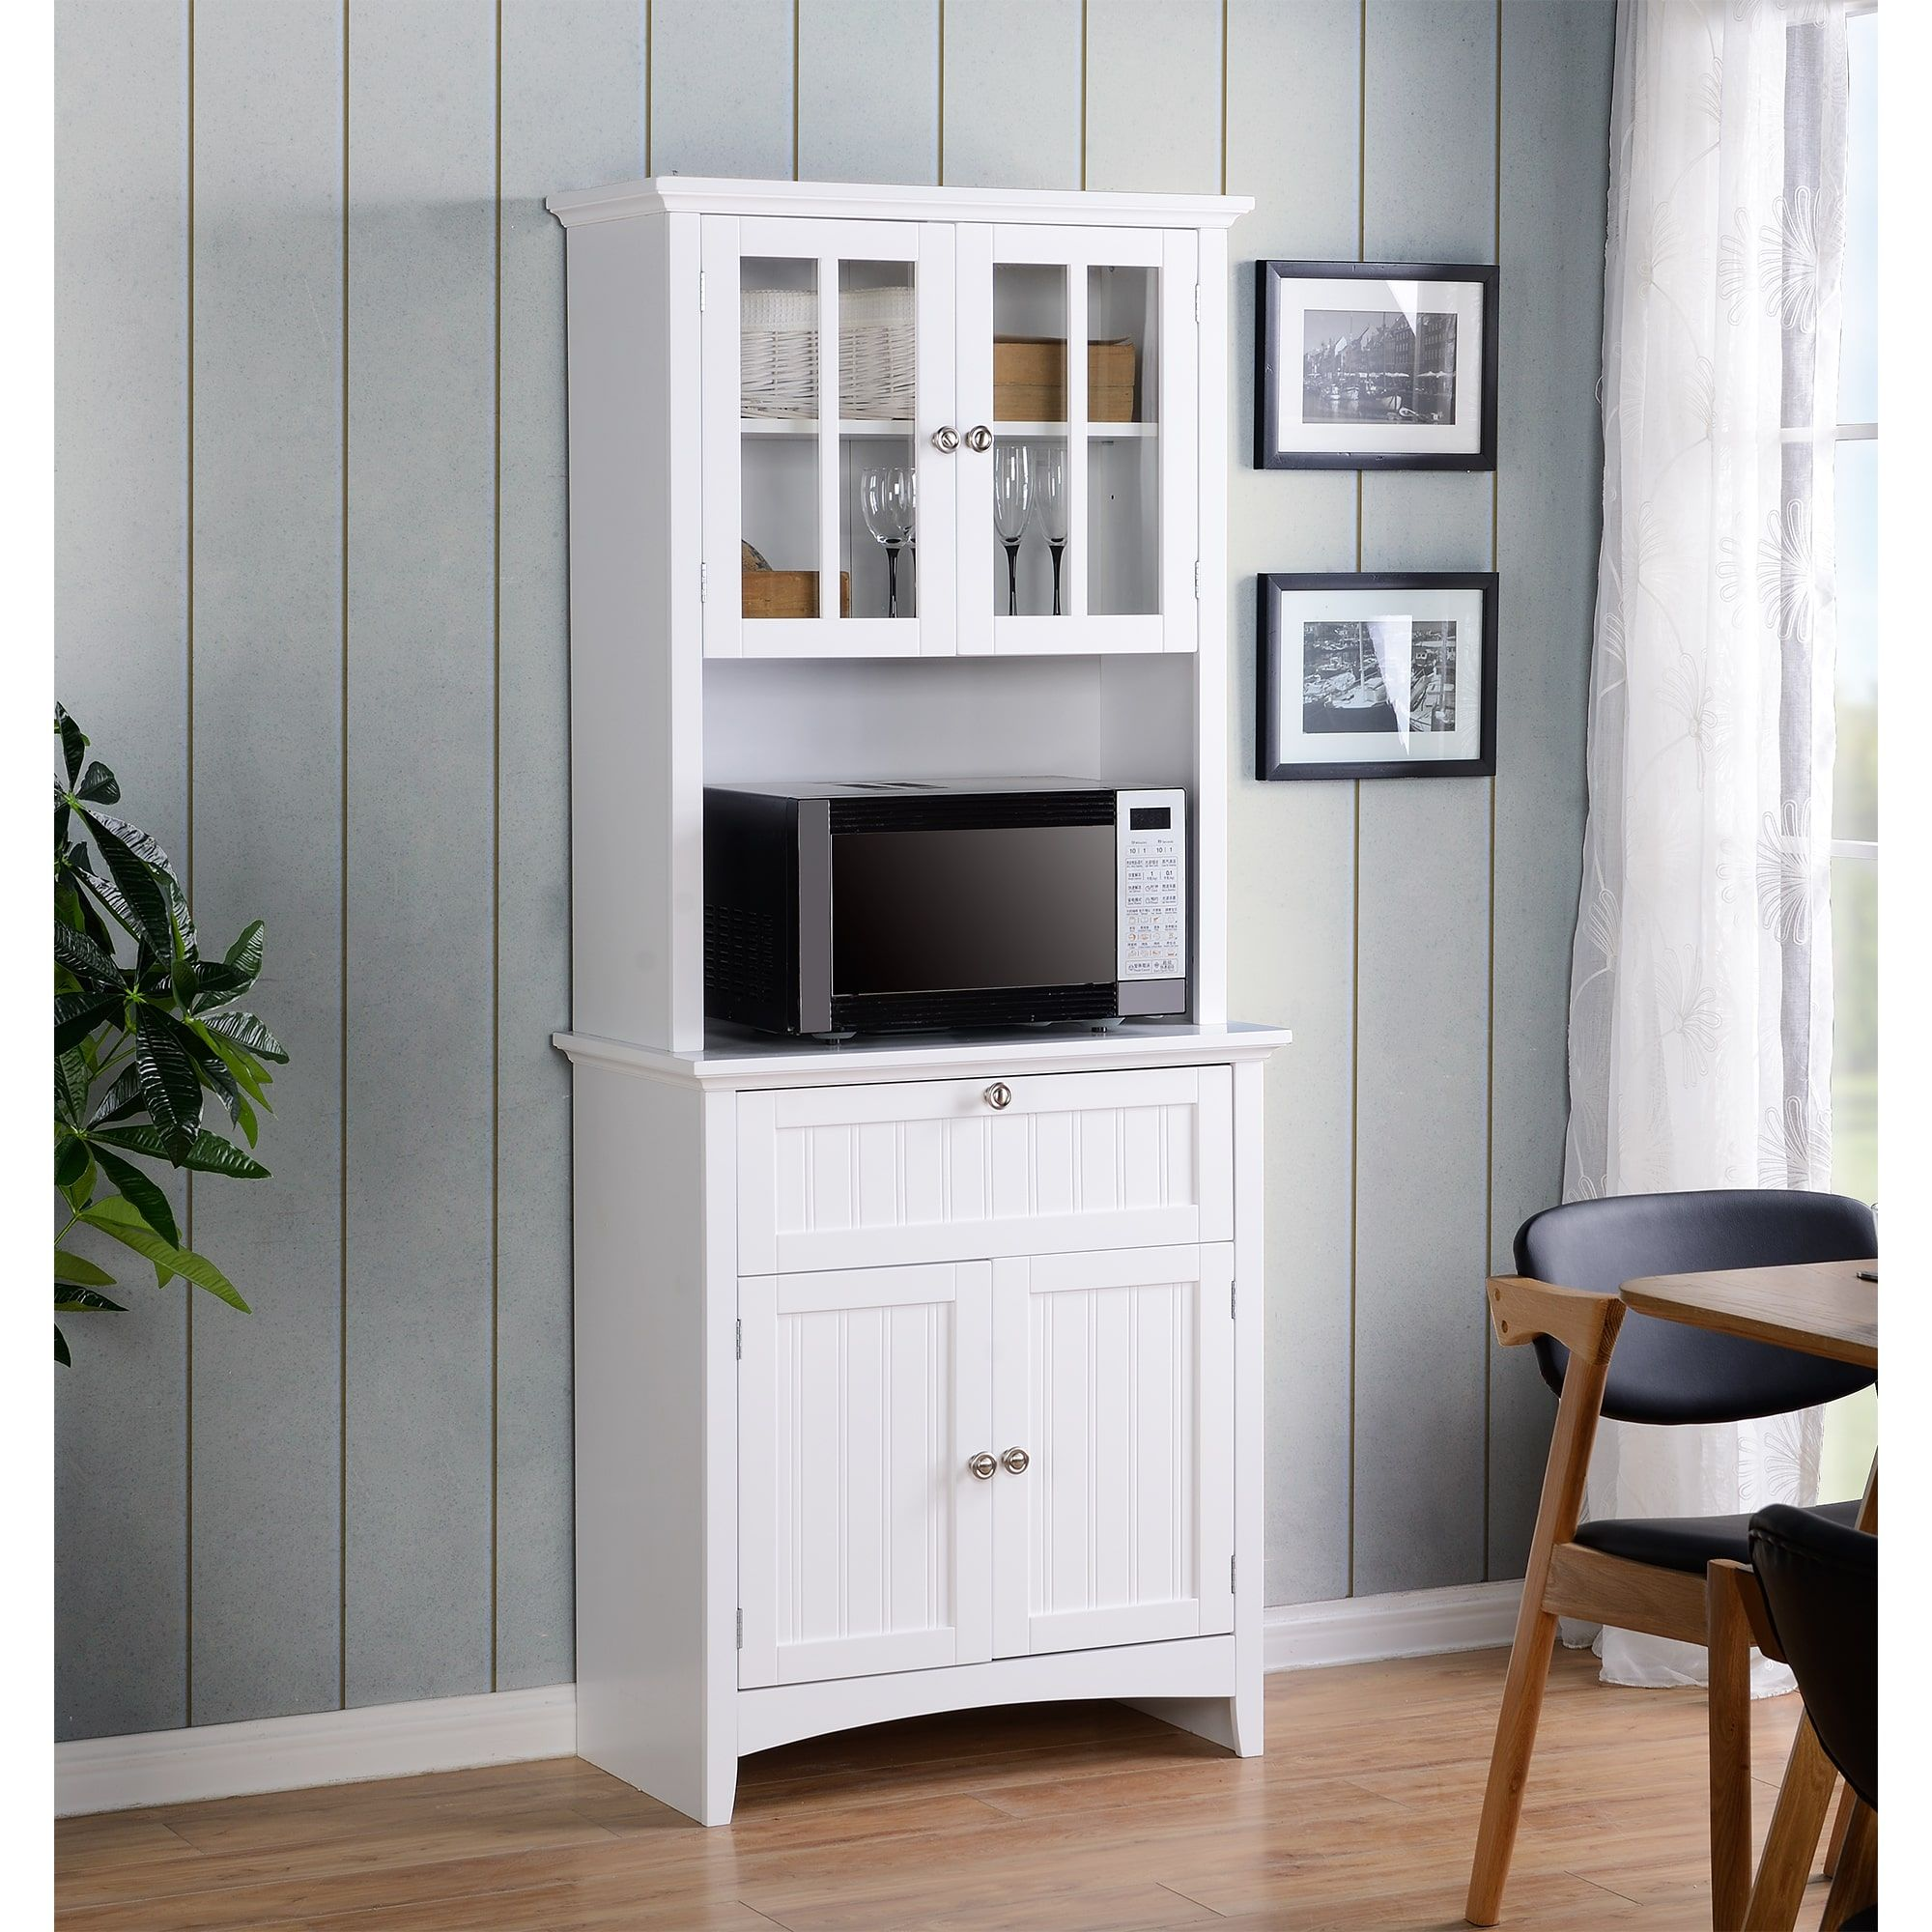 OS Home and fice Buffet and Hutch with Framed Glass Doors and